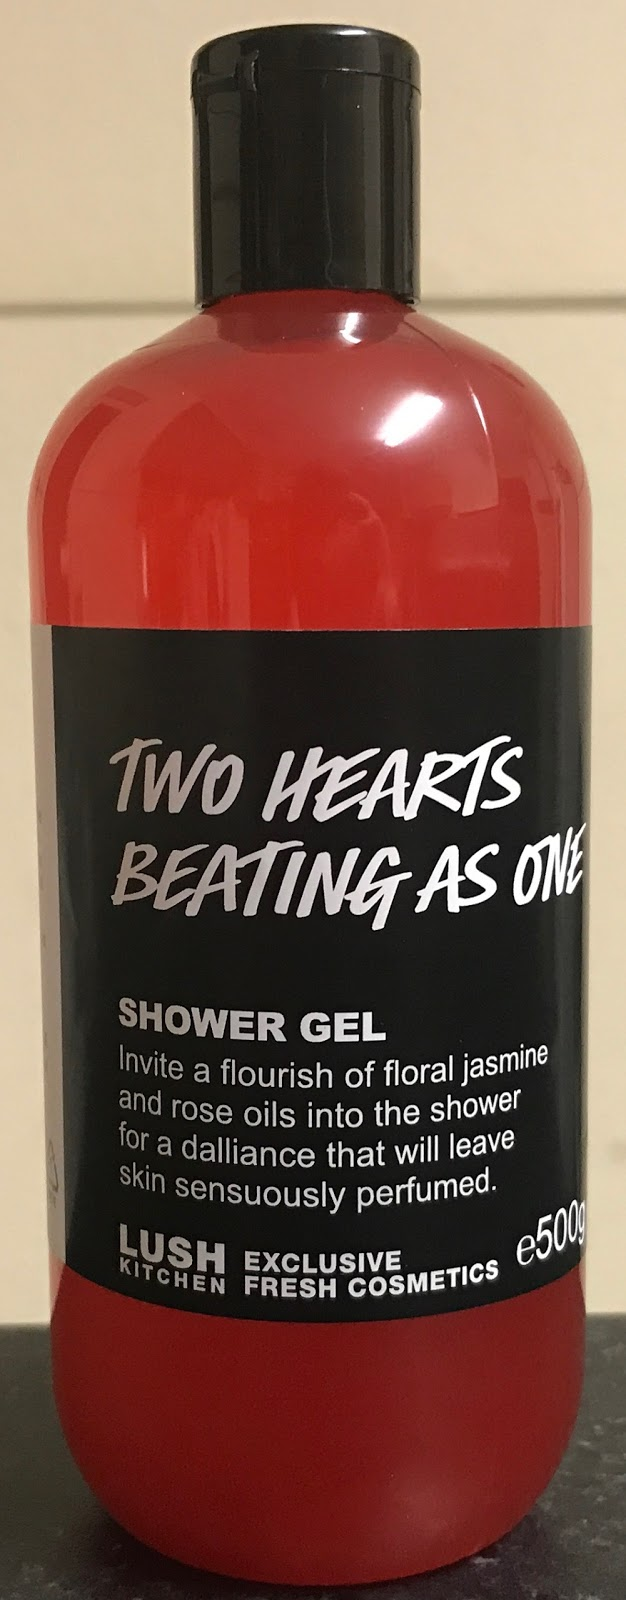 All Things Lush Uk Two Hearts Beating As One Shower Gel